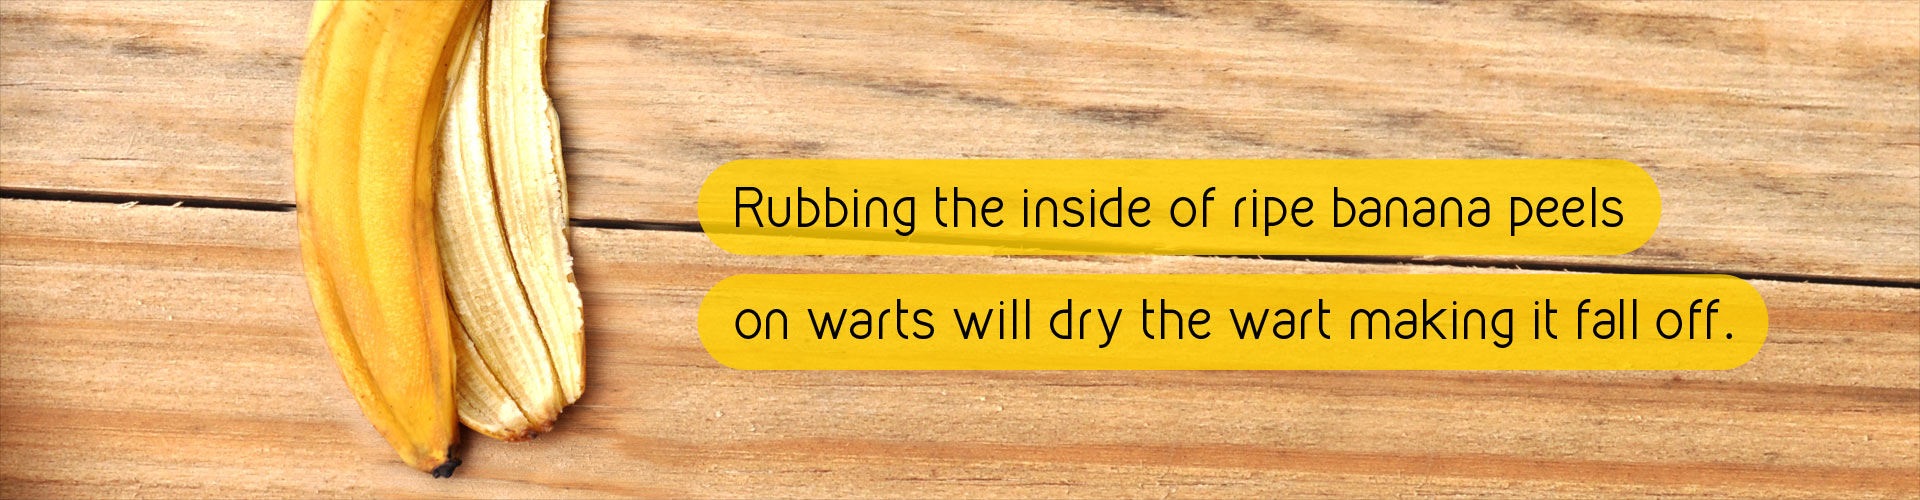 Rubbing the inside of ripe banana peels on warts will dry the wart making it fall off.